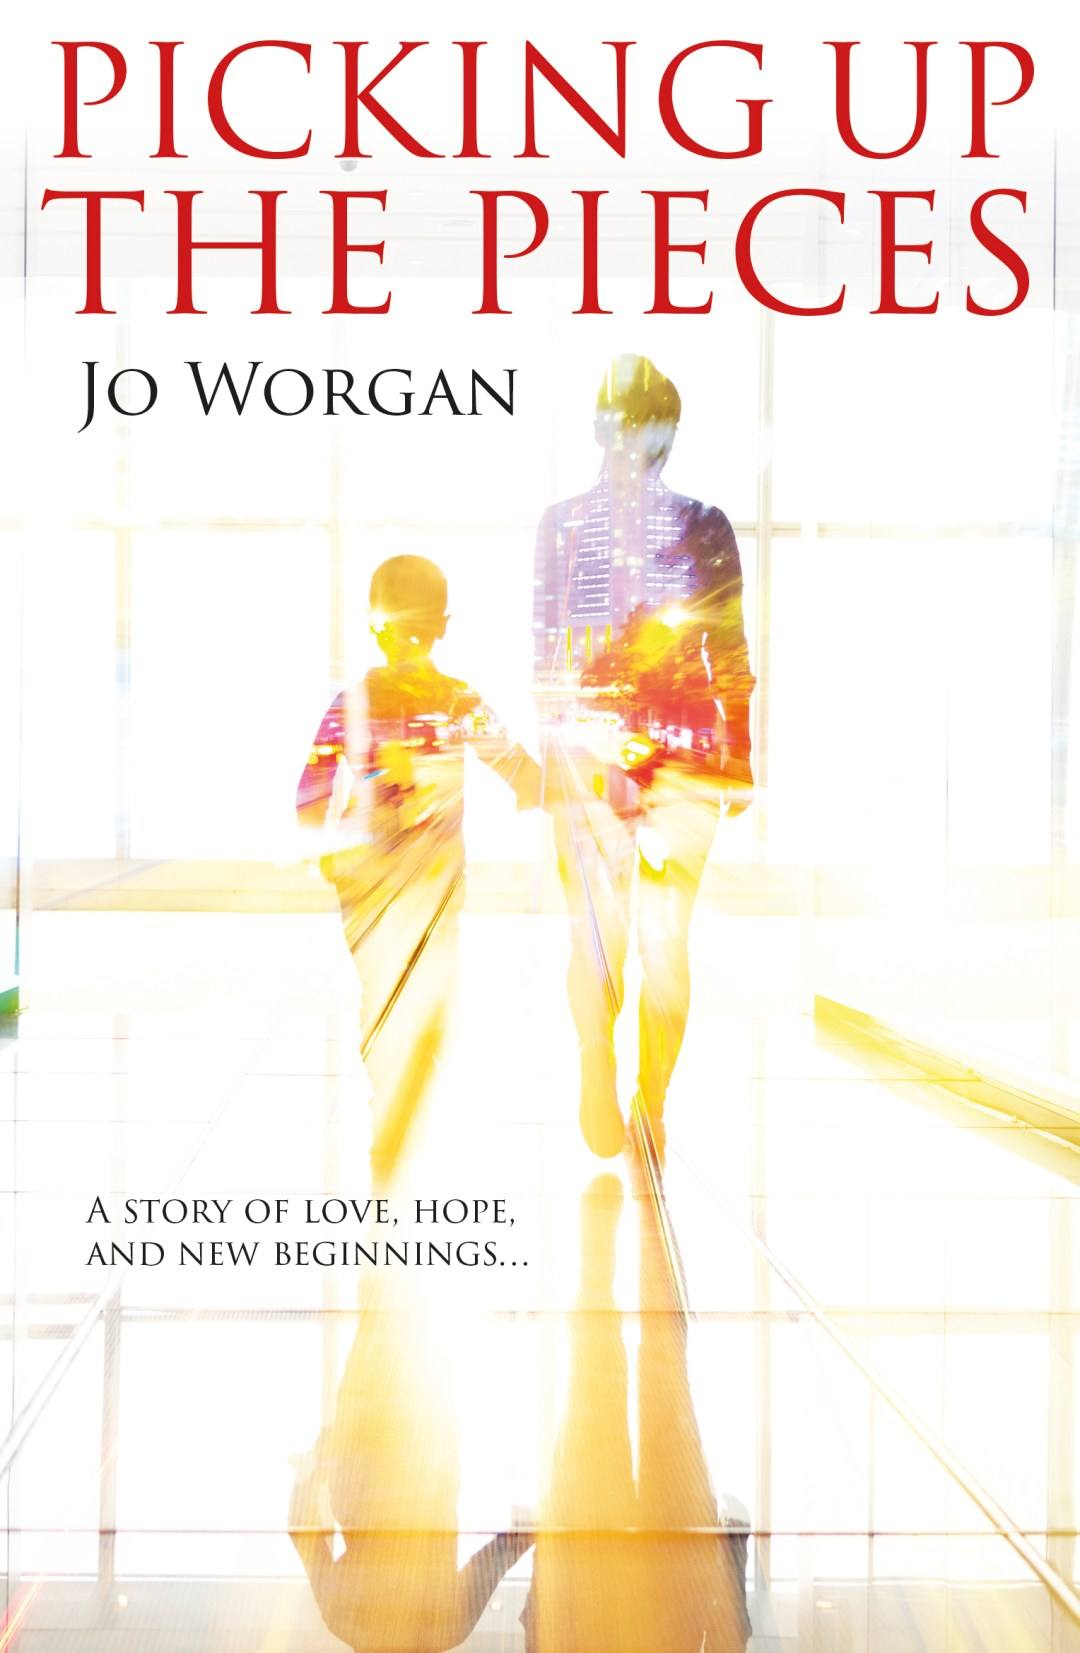 #BookReview of Picking up the pieces by Jo Worgan @joanneworgan @urbanebooks #lovebooksgrouptours